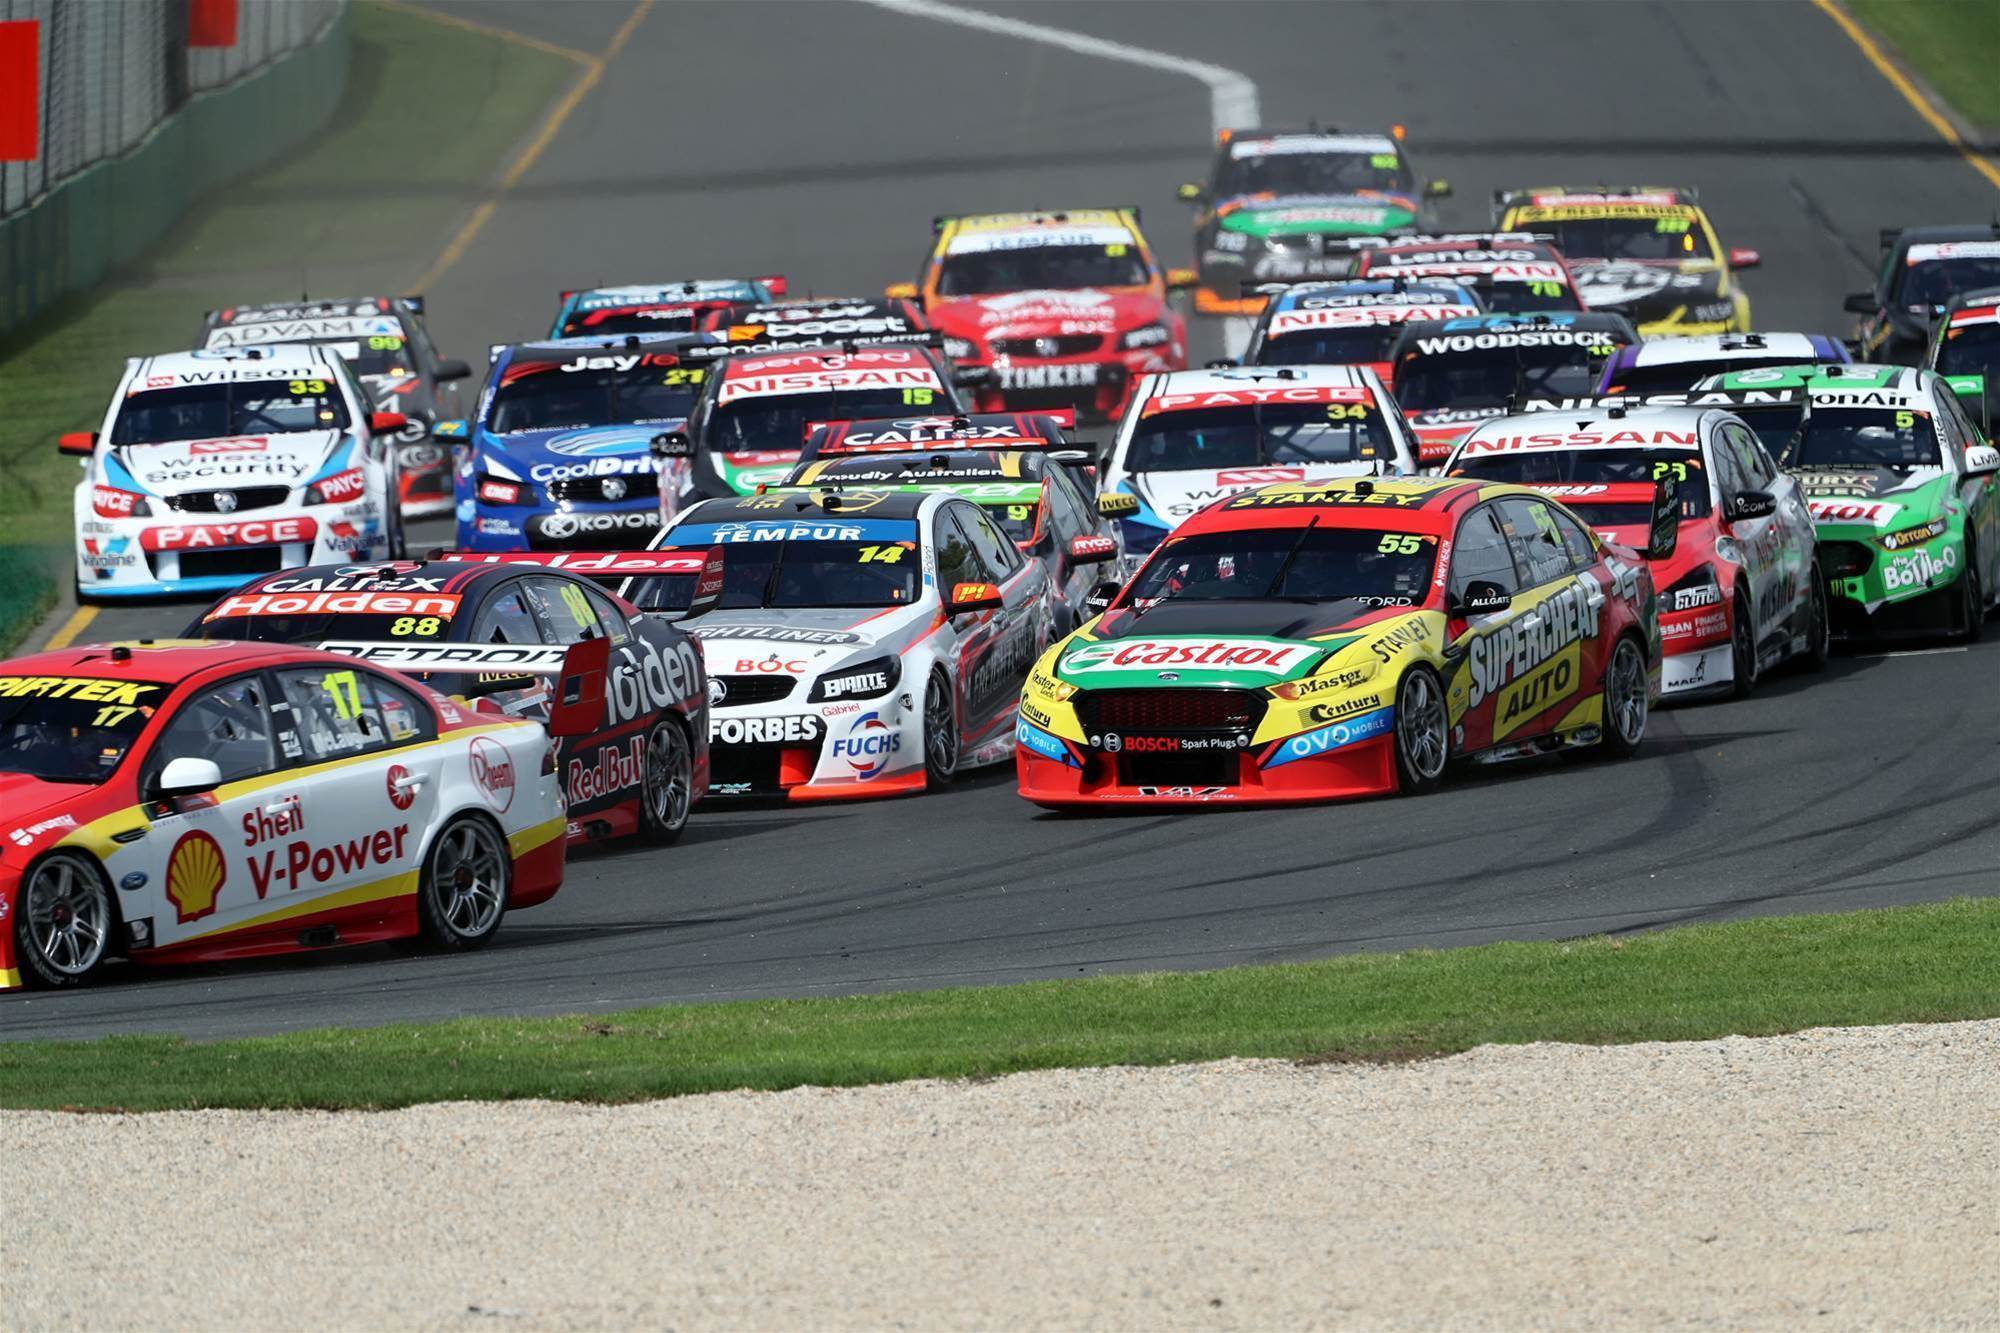 Albert Park Supercars to become championship round